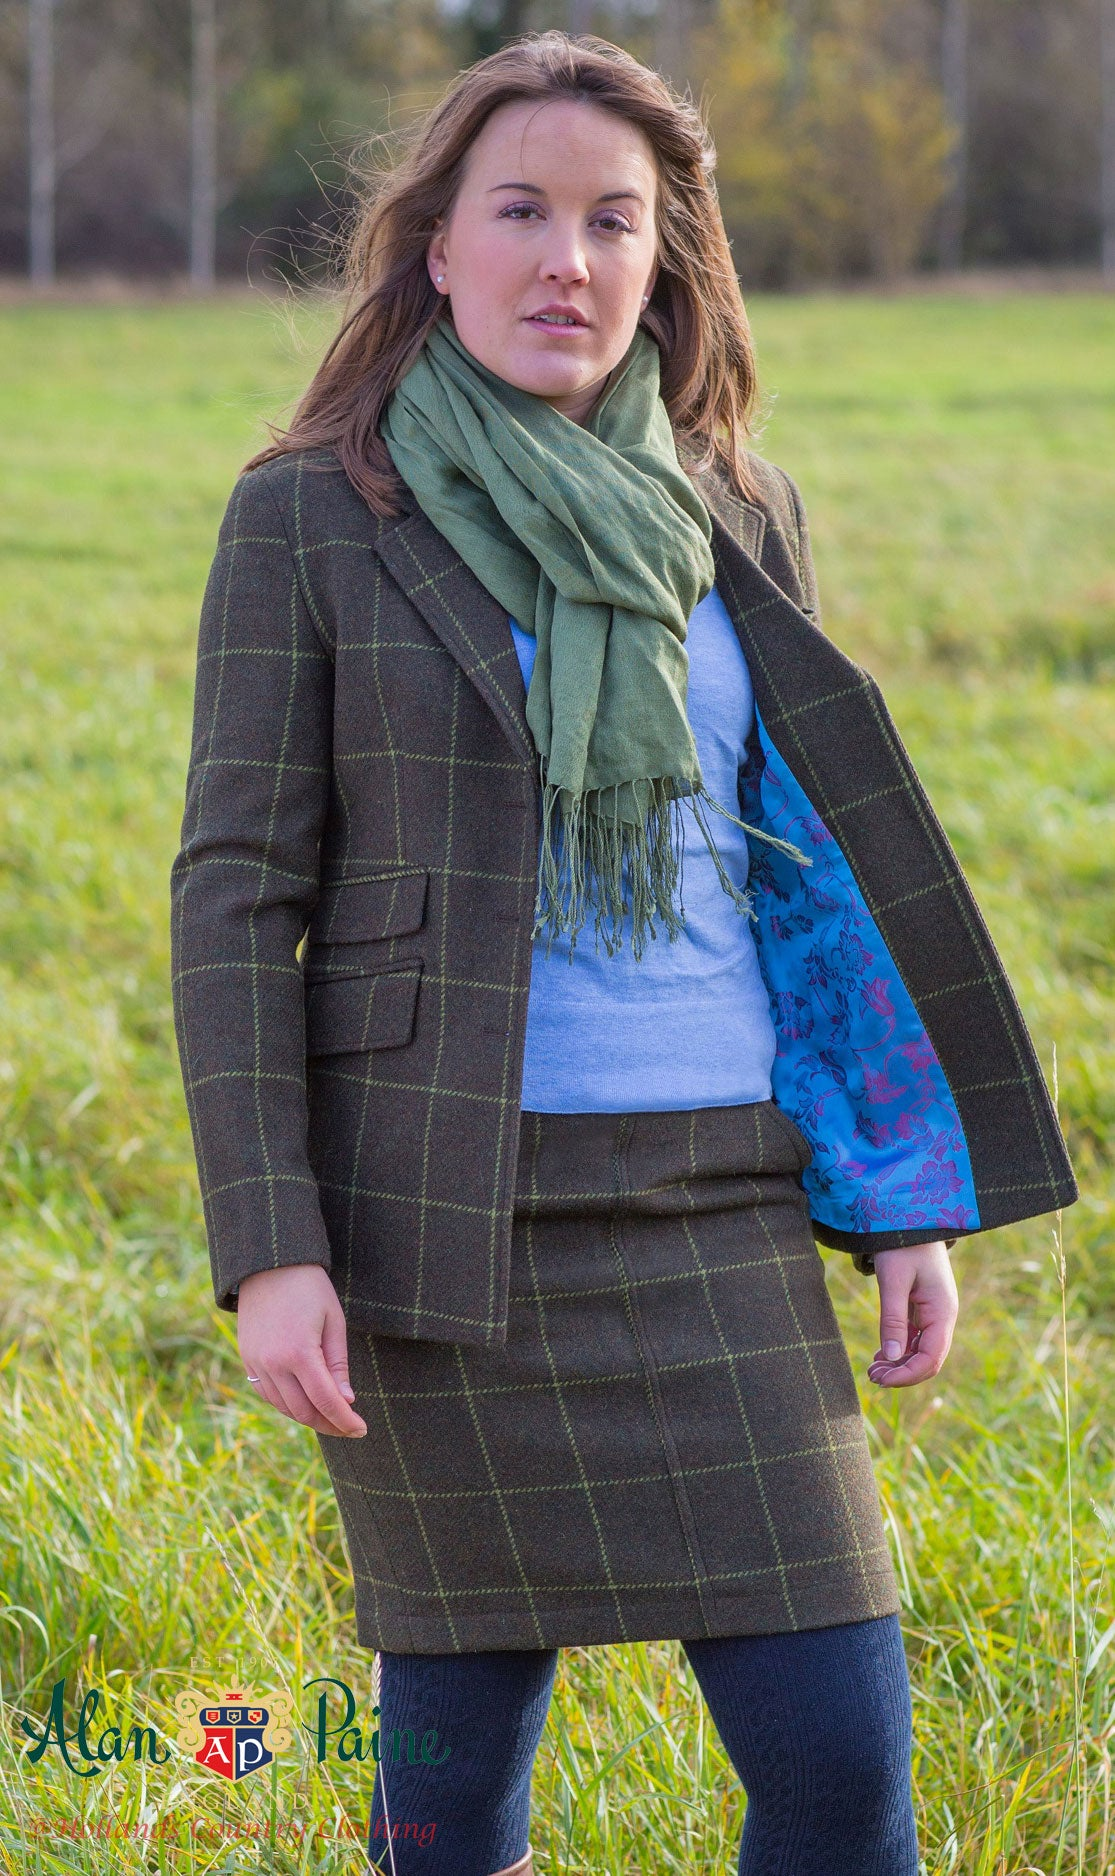 wearing alan paine in a field